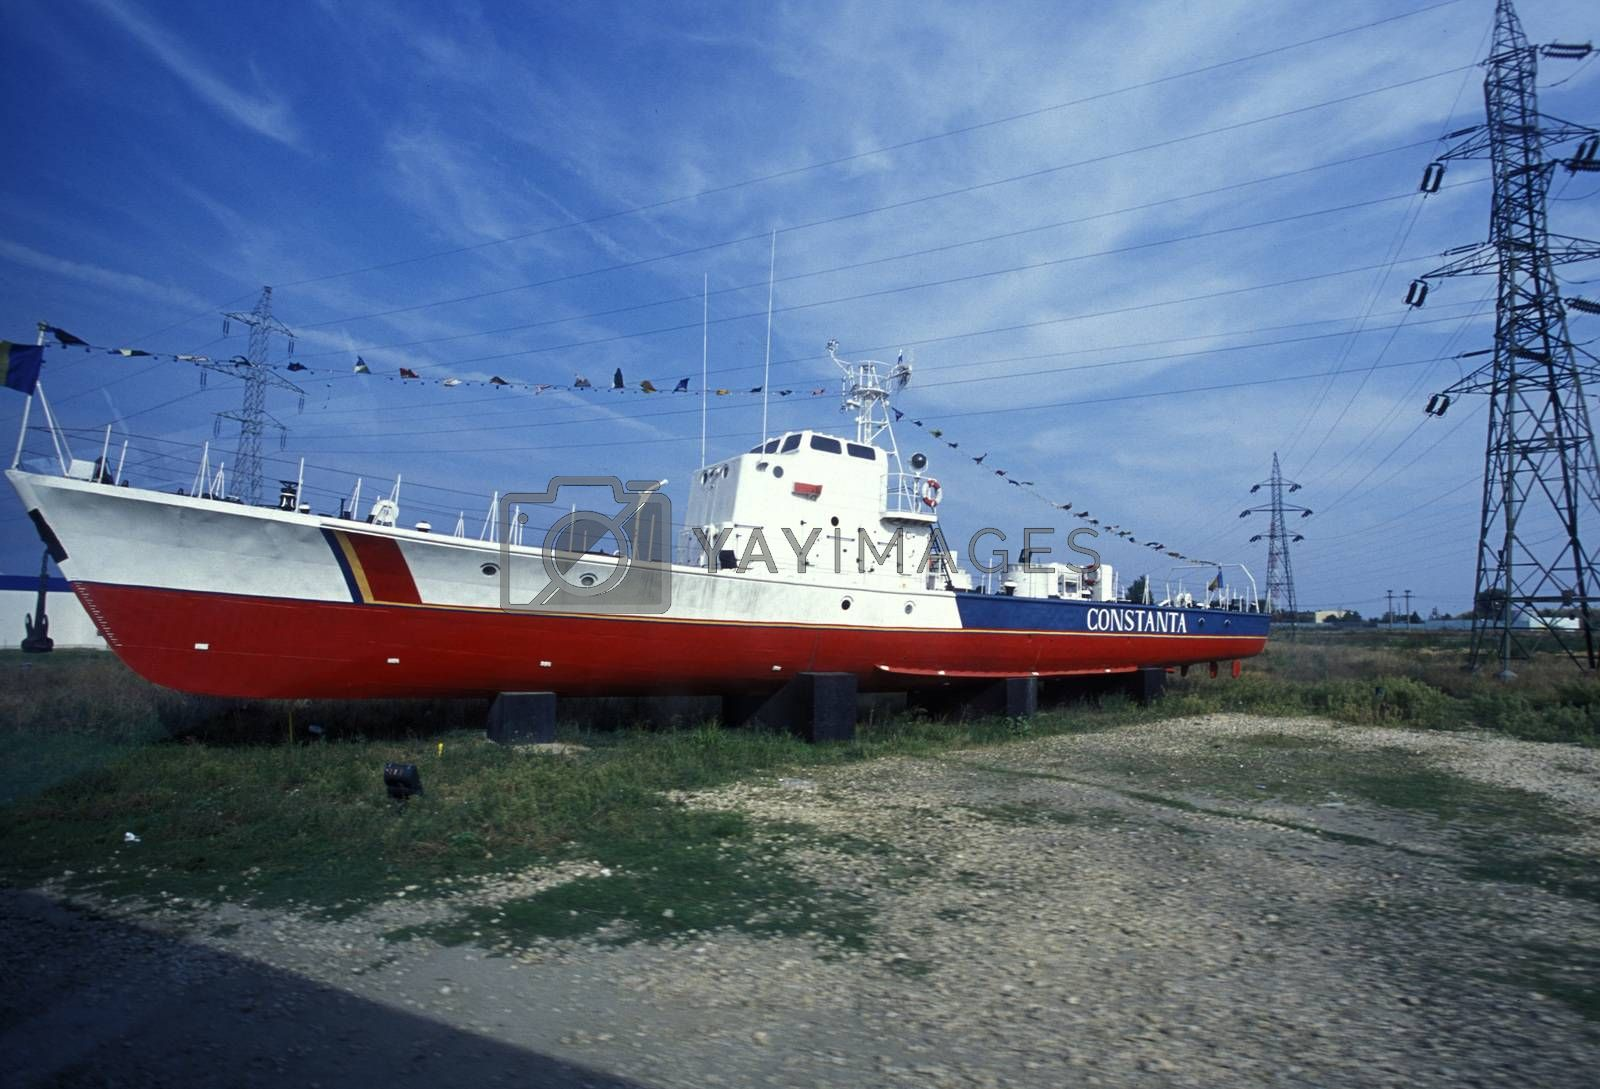 a ship at the beach in the city of constanta on the Black sea in Romania in east europe.